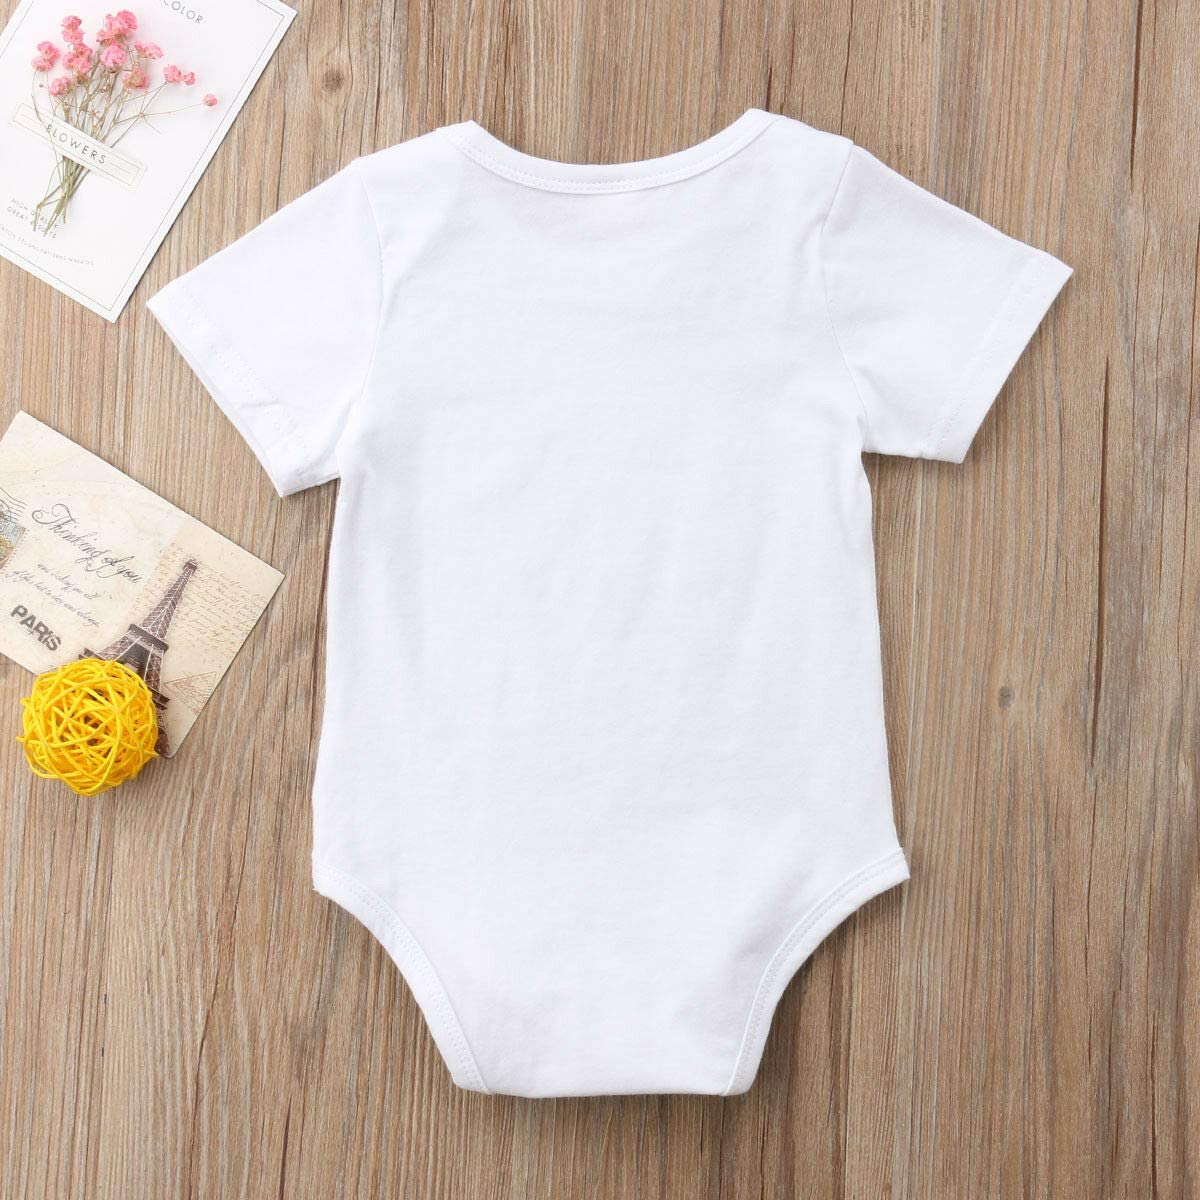 Carolilly Baby Clothes Newborn Twins Boy and Girl Big Brother T-Shirt Little Sister Bodysuit Matching Outfits